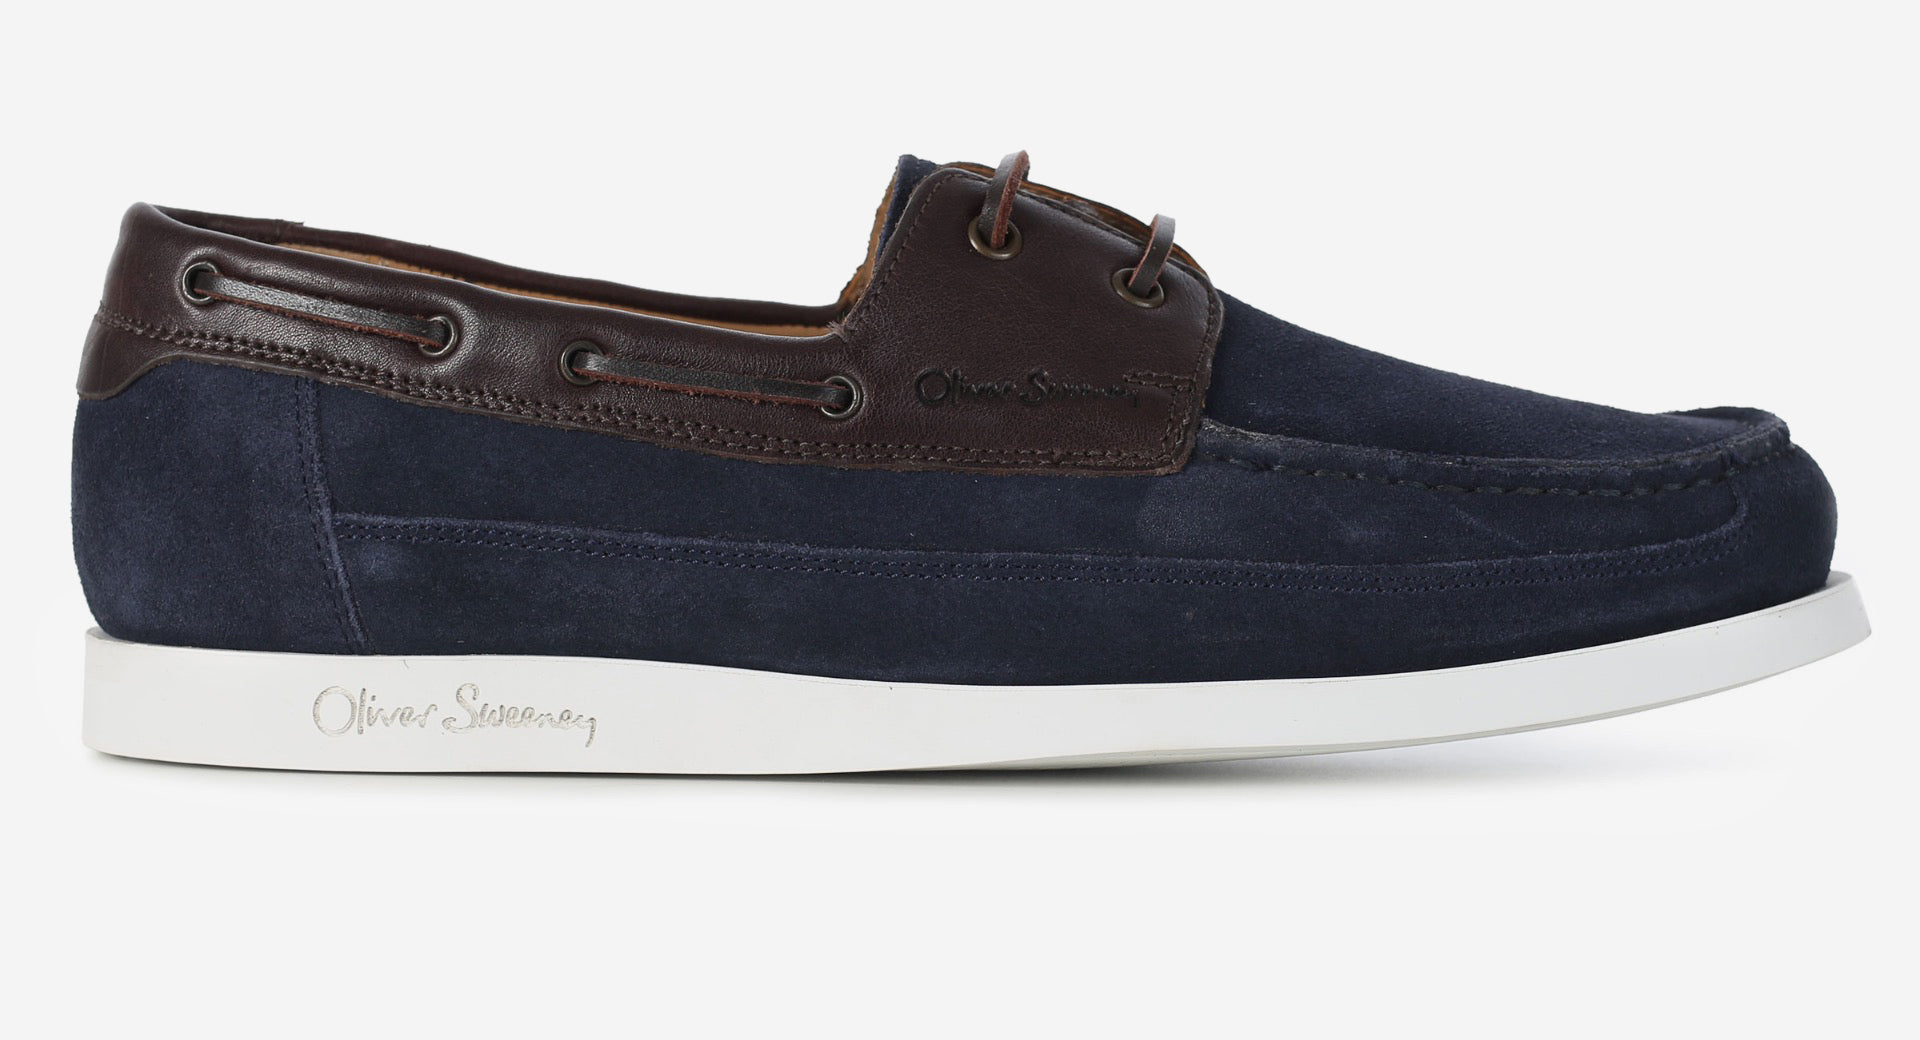 Suede/Calf Leather Boat Shoe